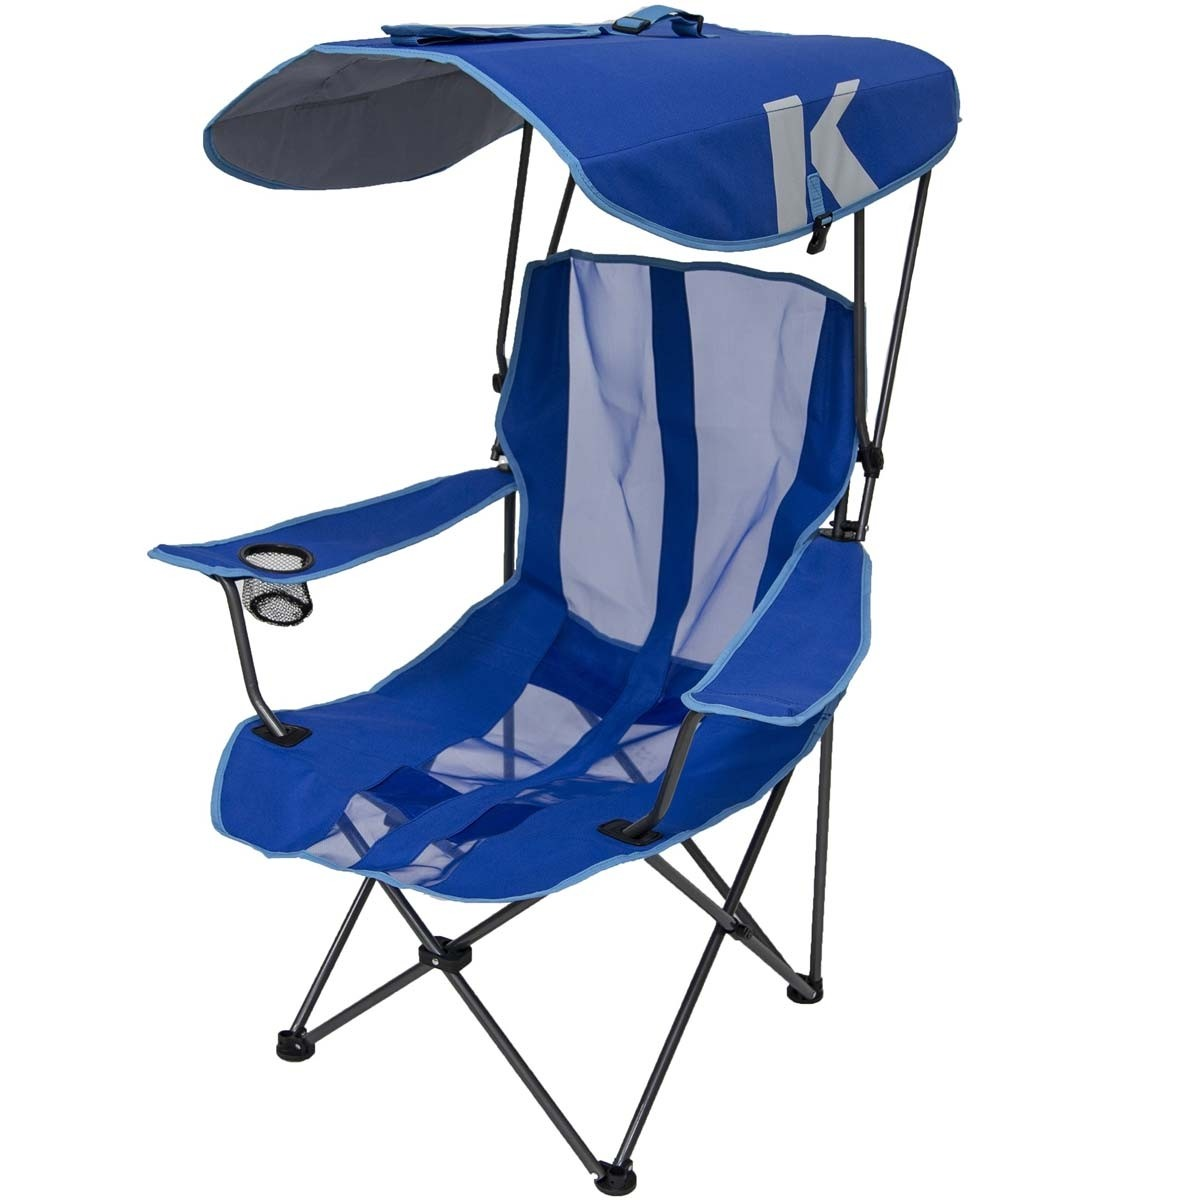 chair with shade canopy motorized recliner kelsyus folding